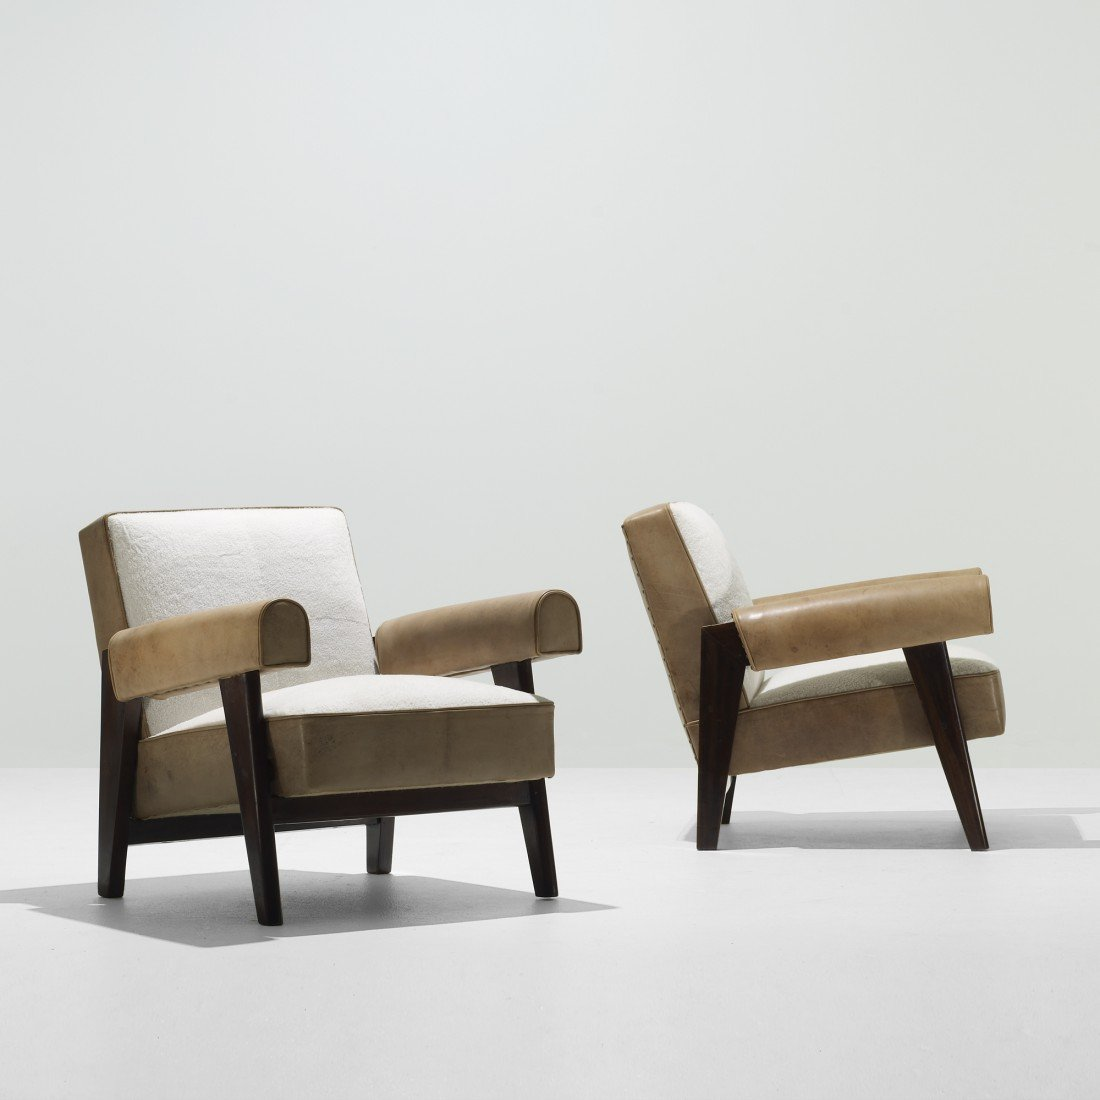 116: Le Corbusier and Jeanneret lounge chairs